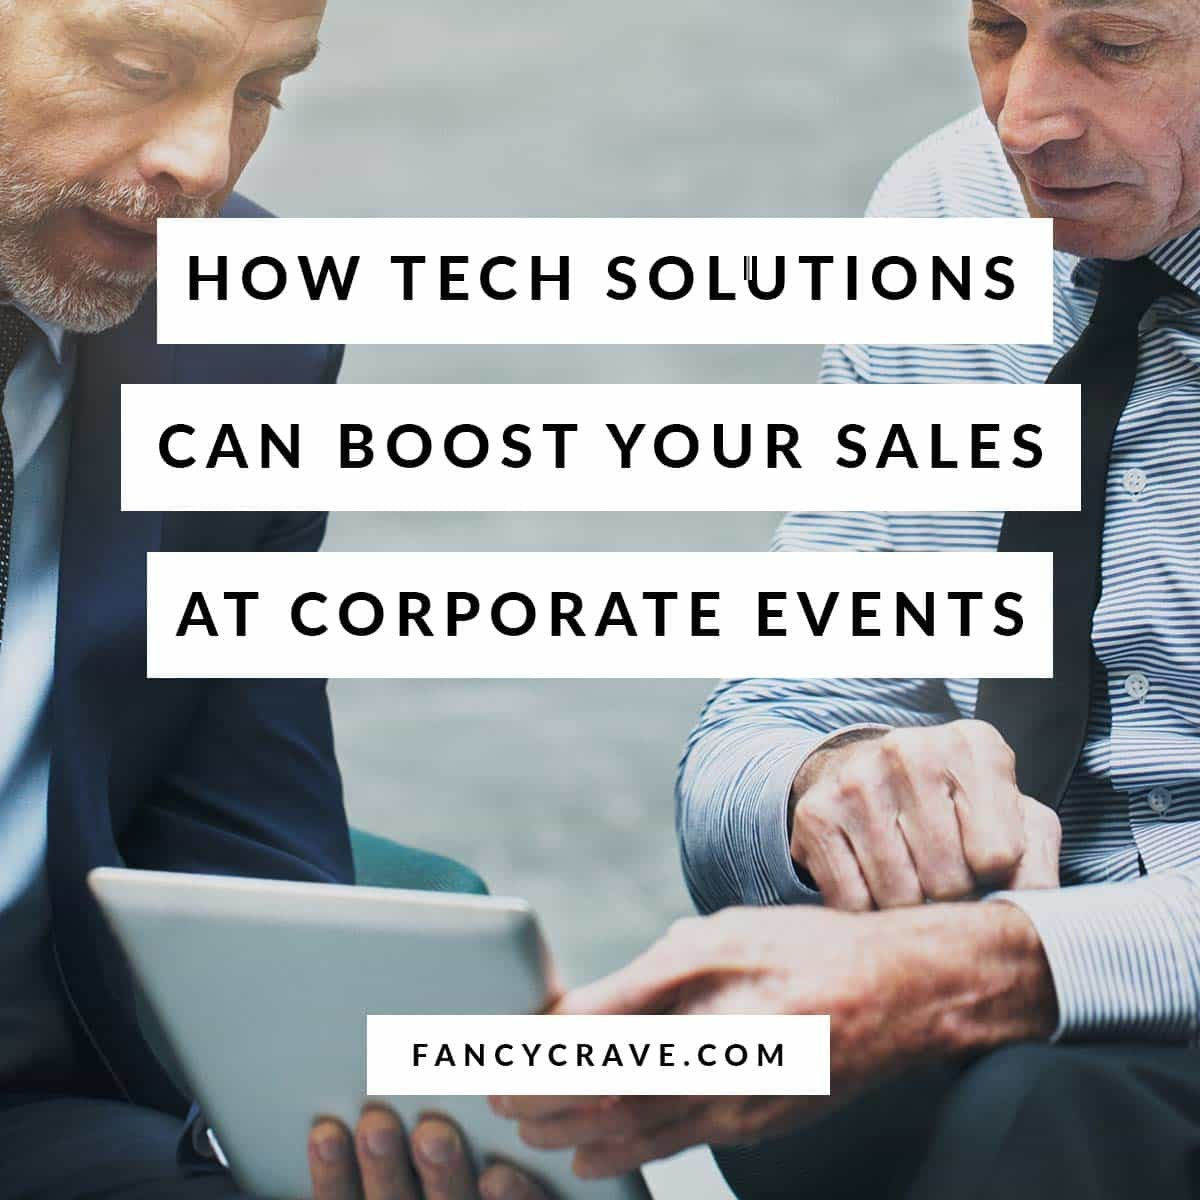 How Tech Solutions Can Boost Your Sales at Corporate Events